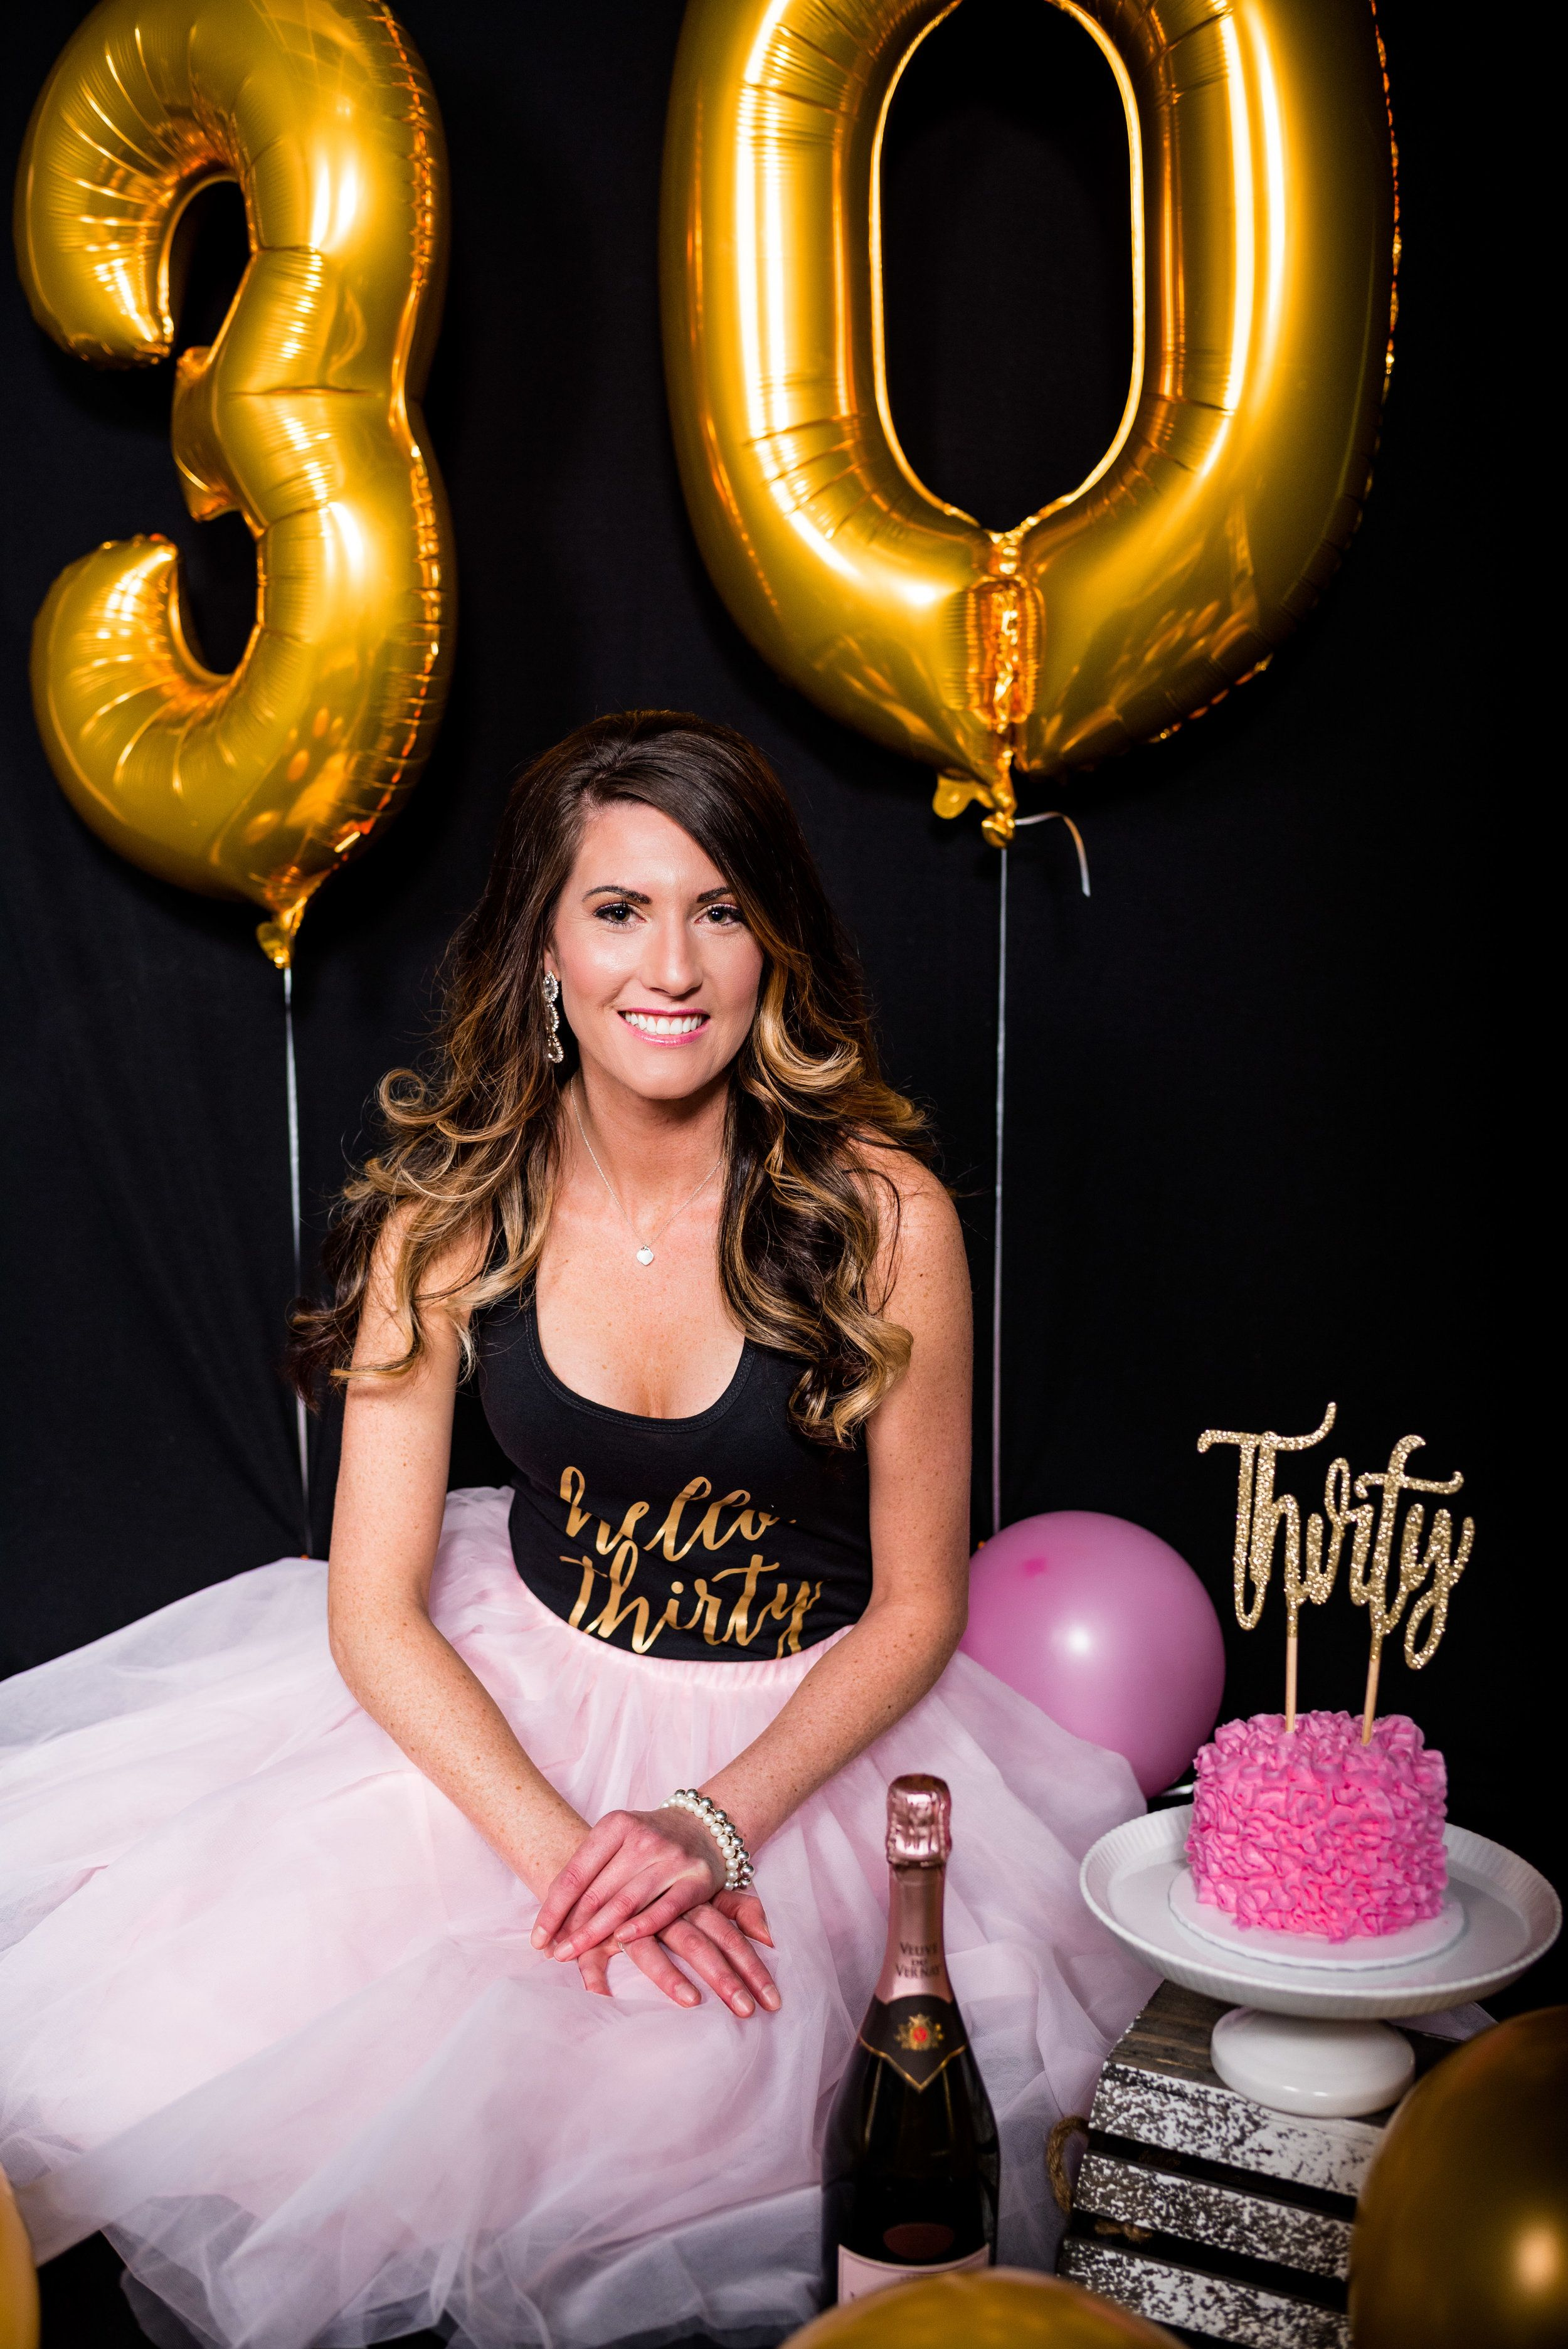 Holly Turns 30! Grown Up Cake Smash. Toledo Ohio Photography. 5016cacc6a92